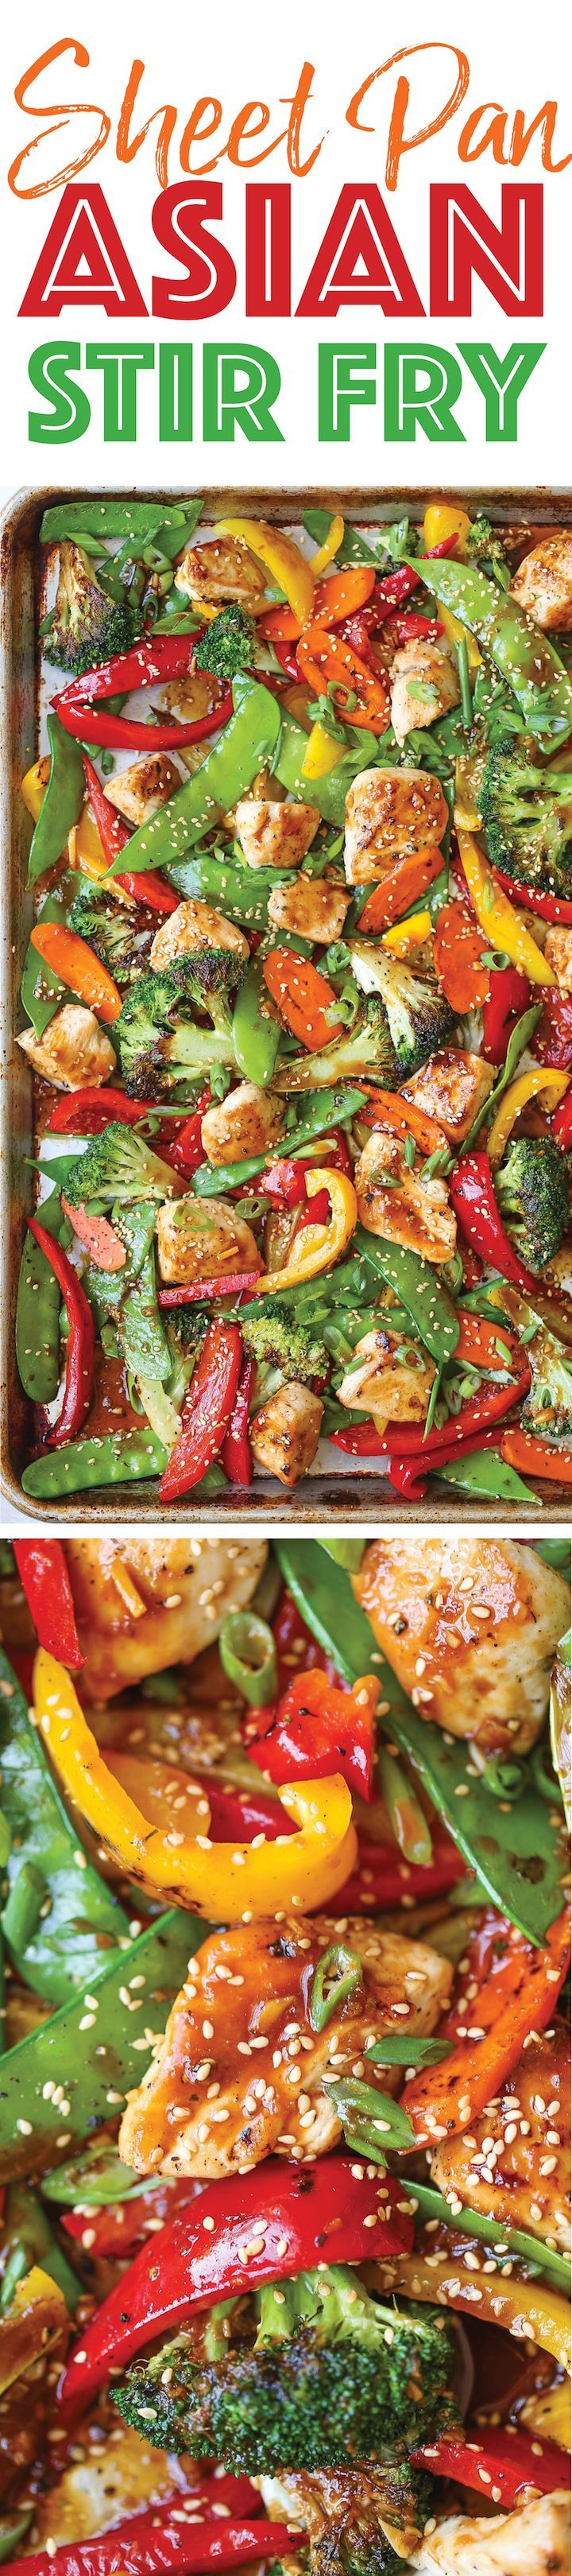 Sheet Pan Asian Stir Fry - Everyone's favorite classic stir fry made on a sheet pan! No fancy wok/skillet needed here. Only one pan for clean-up.